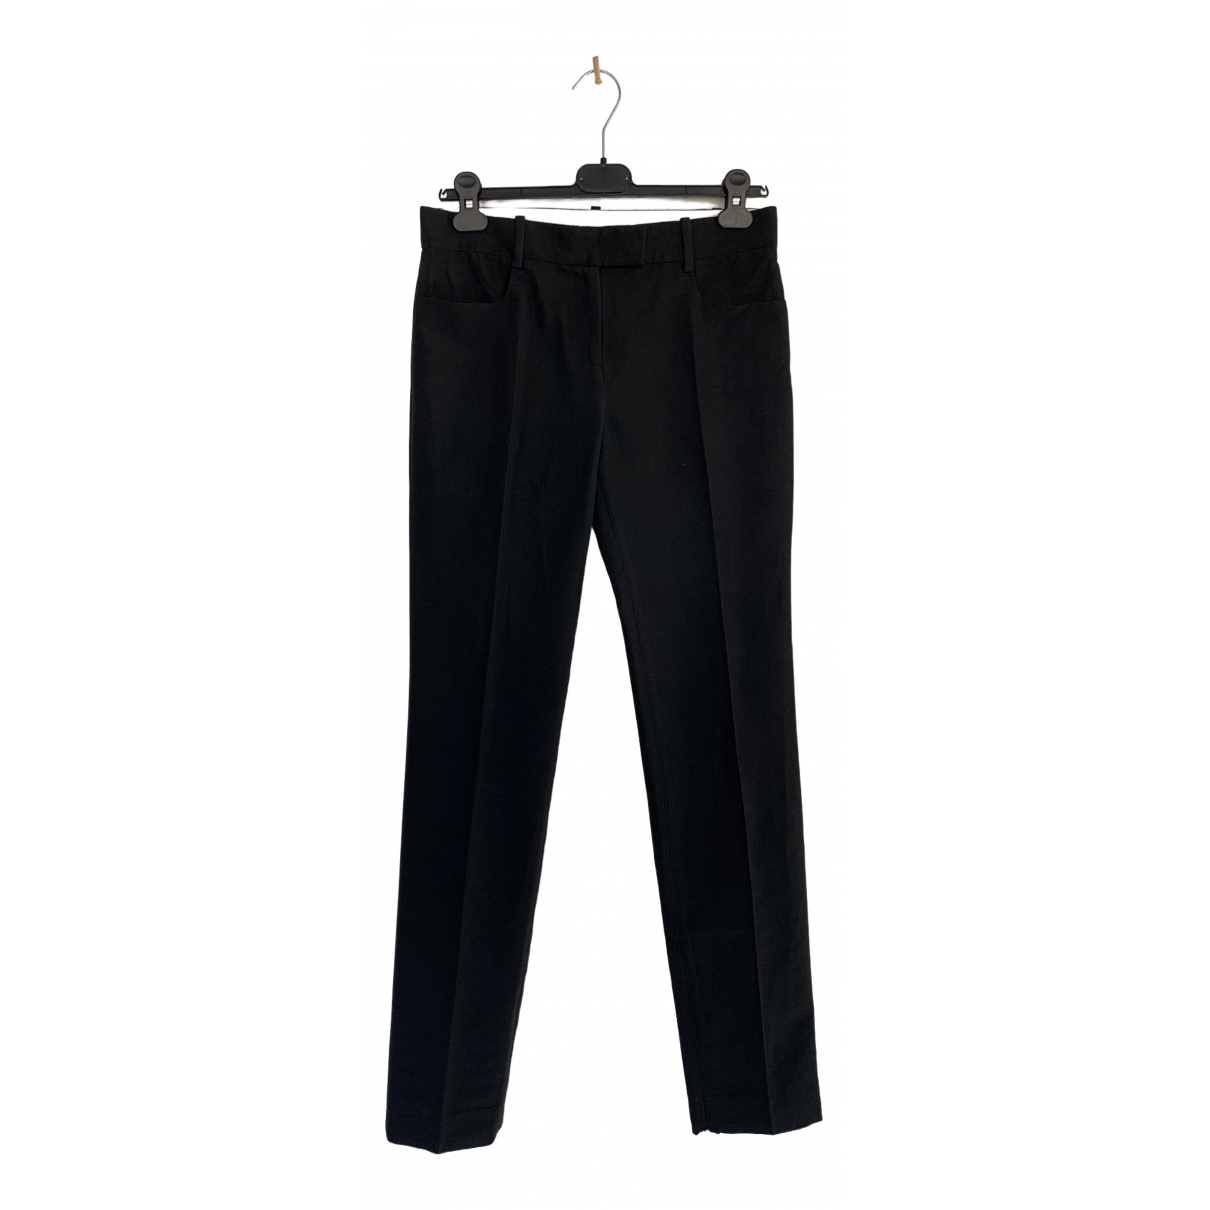 Matthew Williamson \N Black Cotton Trousers for Women 8 UK